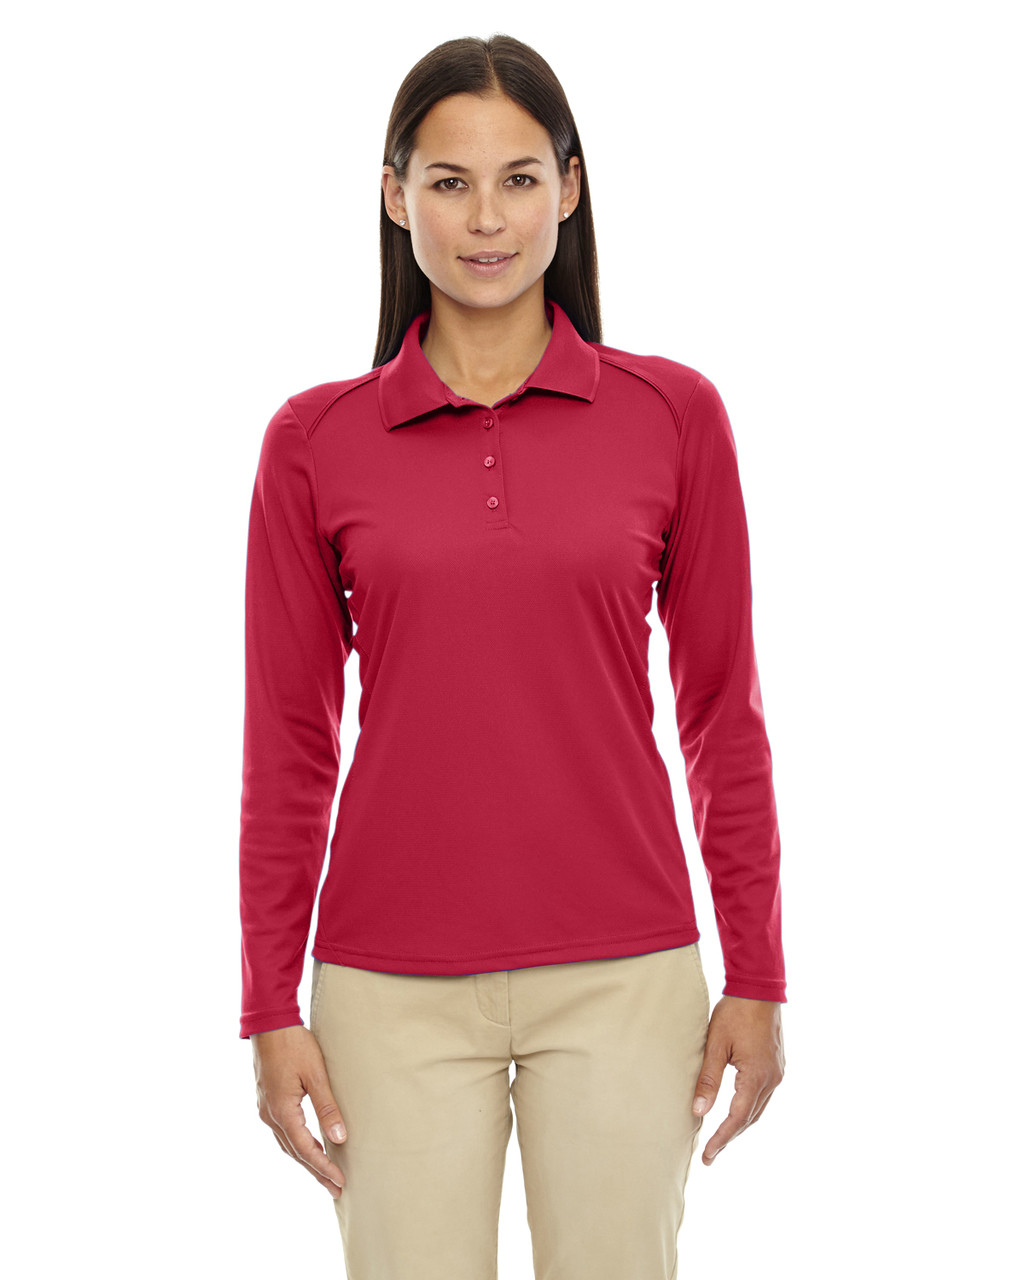 Classic Red - 75111 Ash City - Extreme Eperformance Ladies' Long-Sleeve Polo Shirt | BlankClothinkg.ca